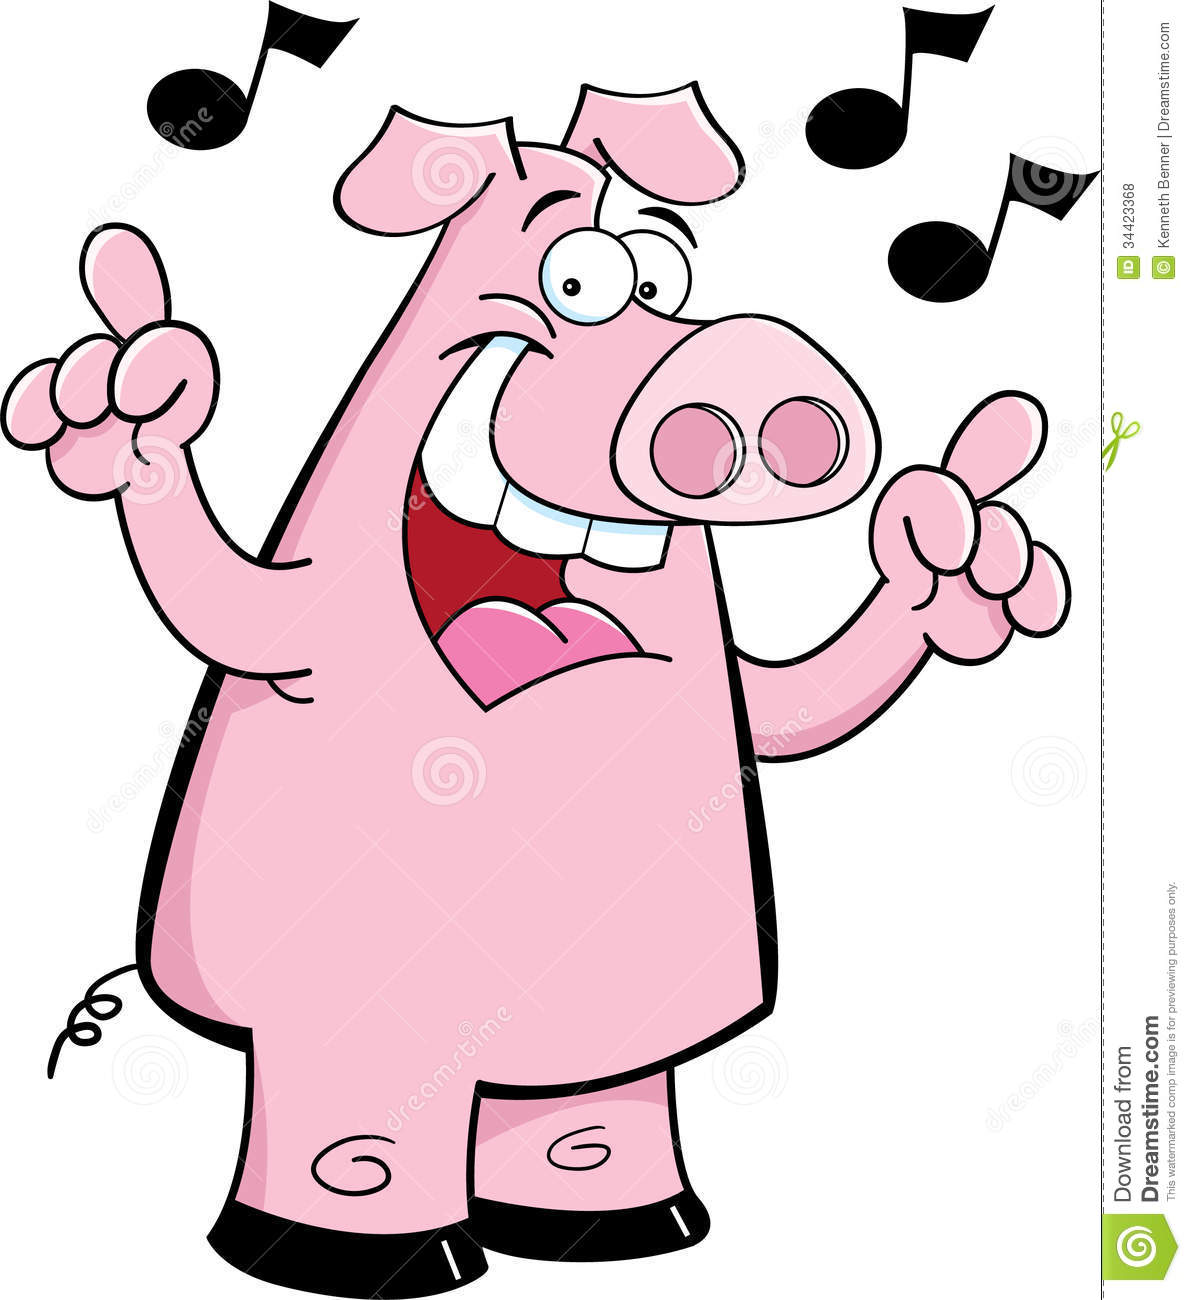 Cartoon Pig Singing Royalty Free Stock Photos - Image: 34423368